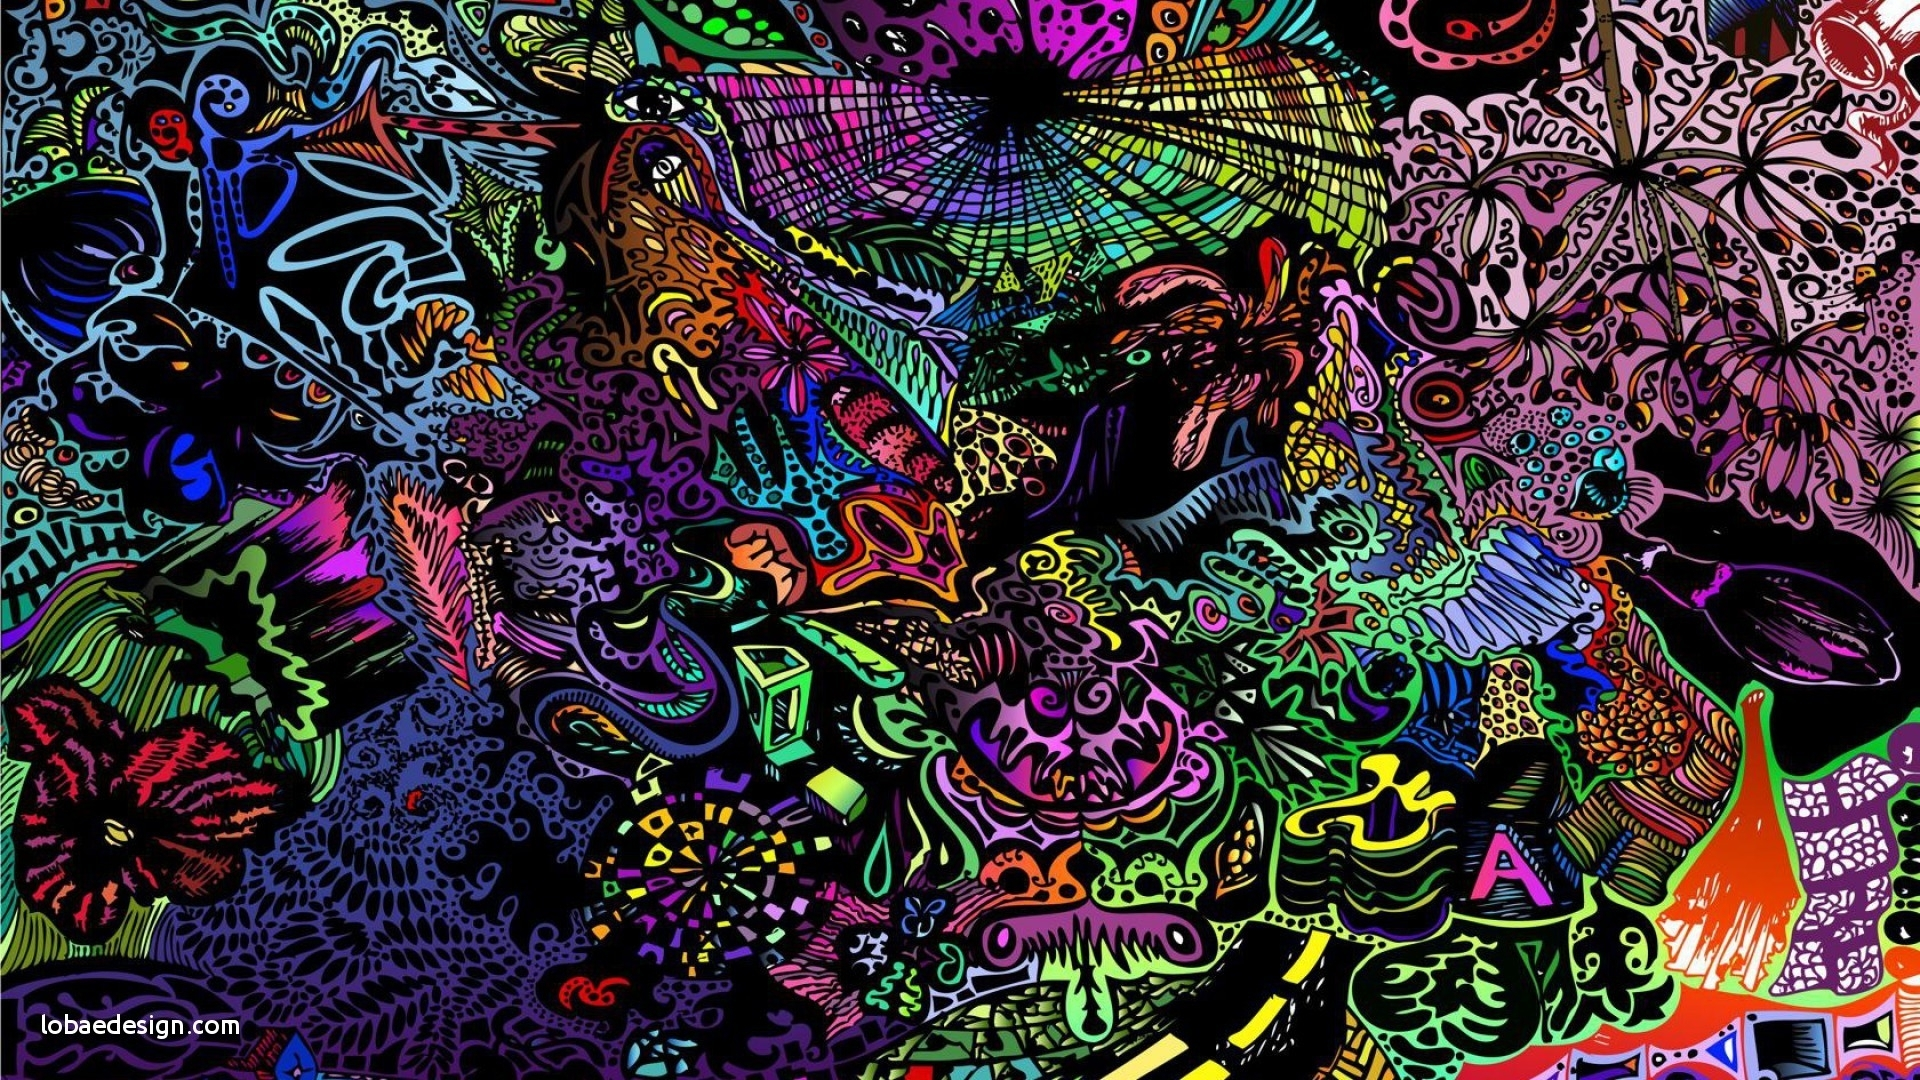 cool trippy 1080p wallpaper wallpapers | lobaedesign